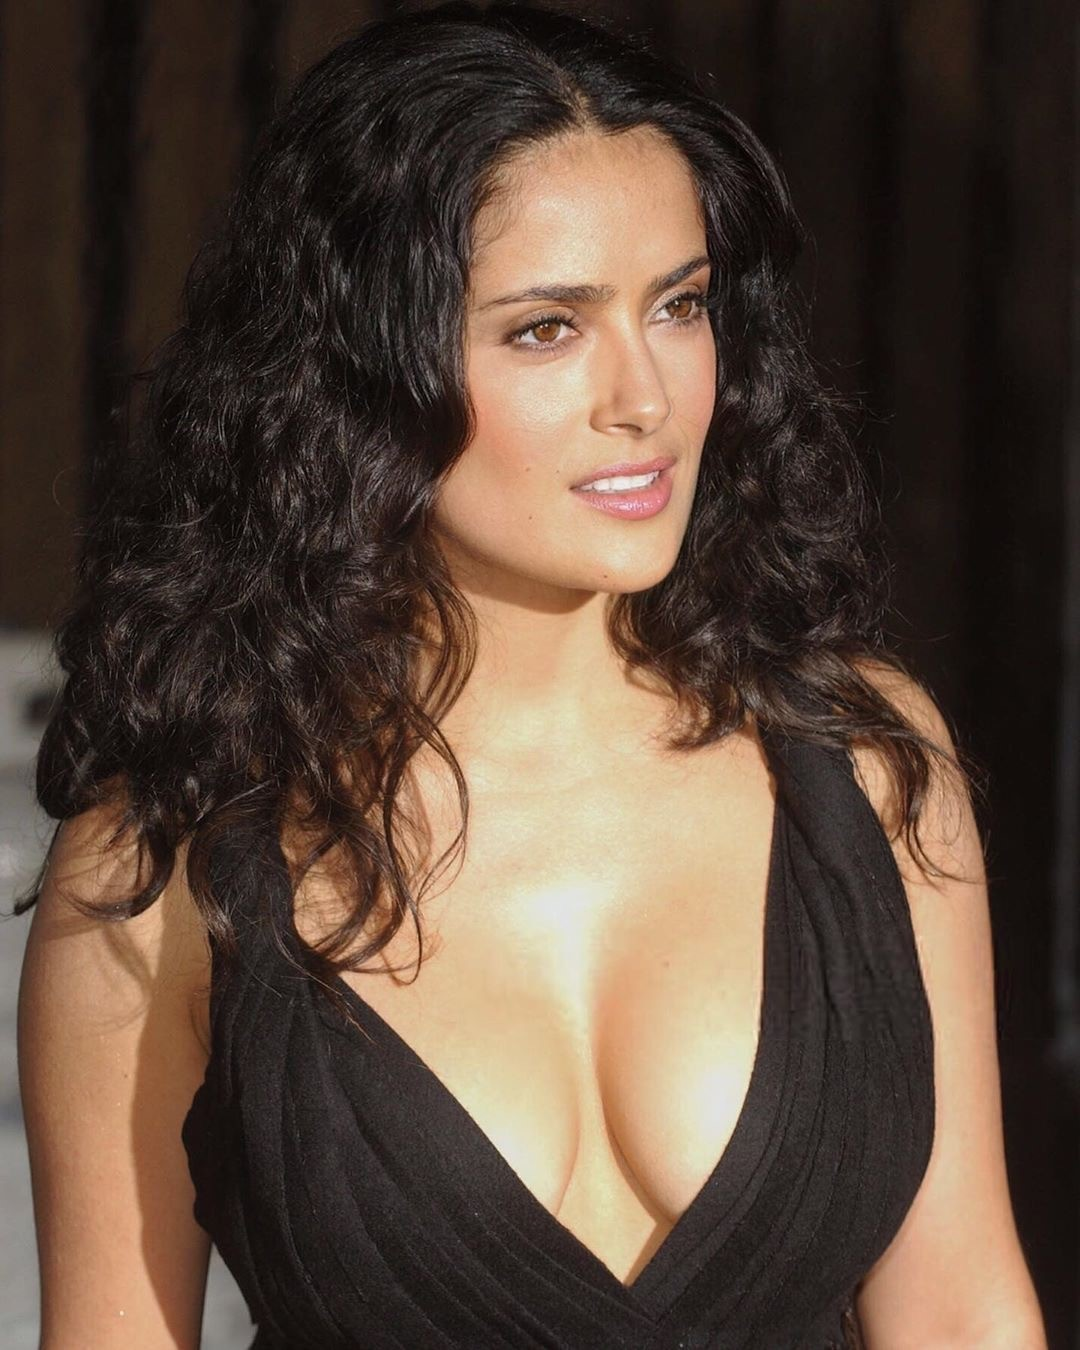 Images of Salma Hayek | Picture 13